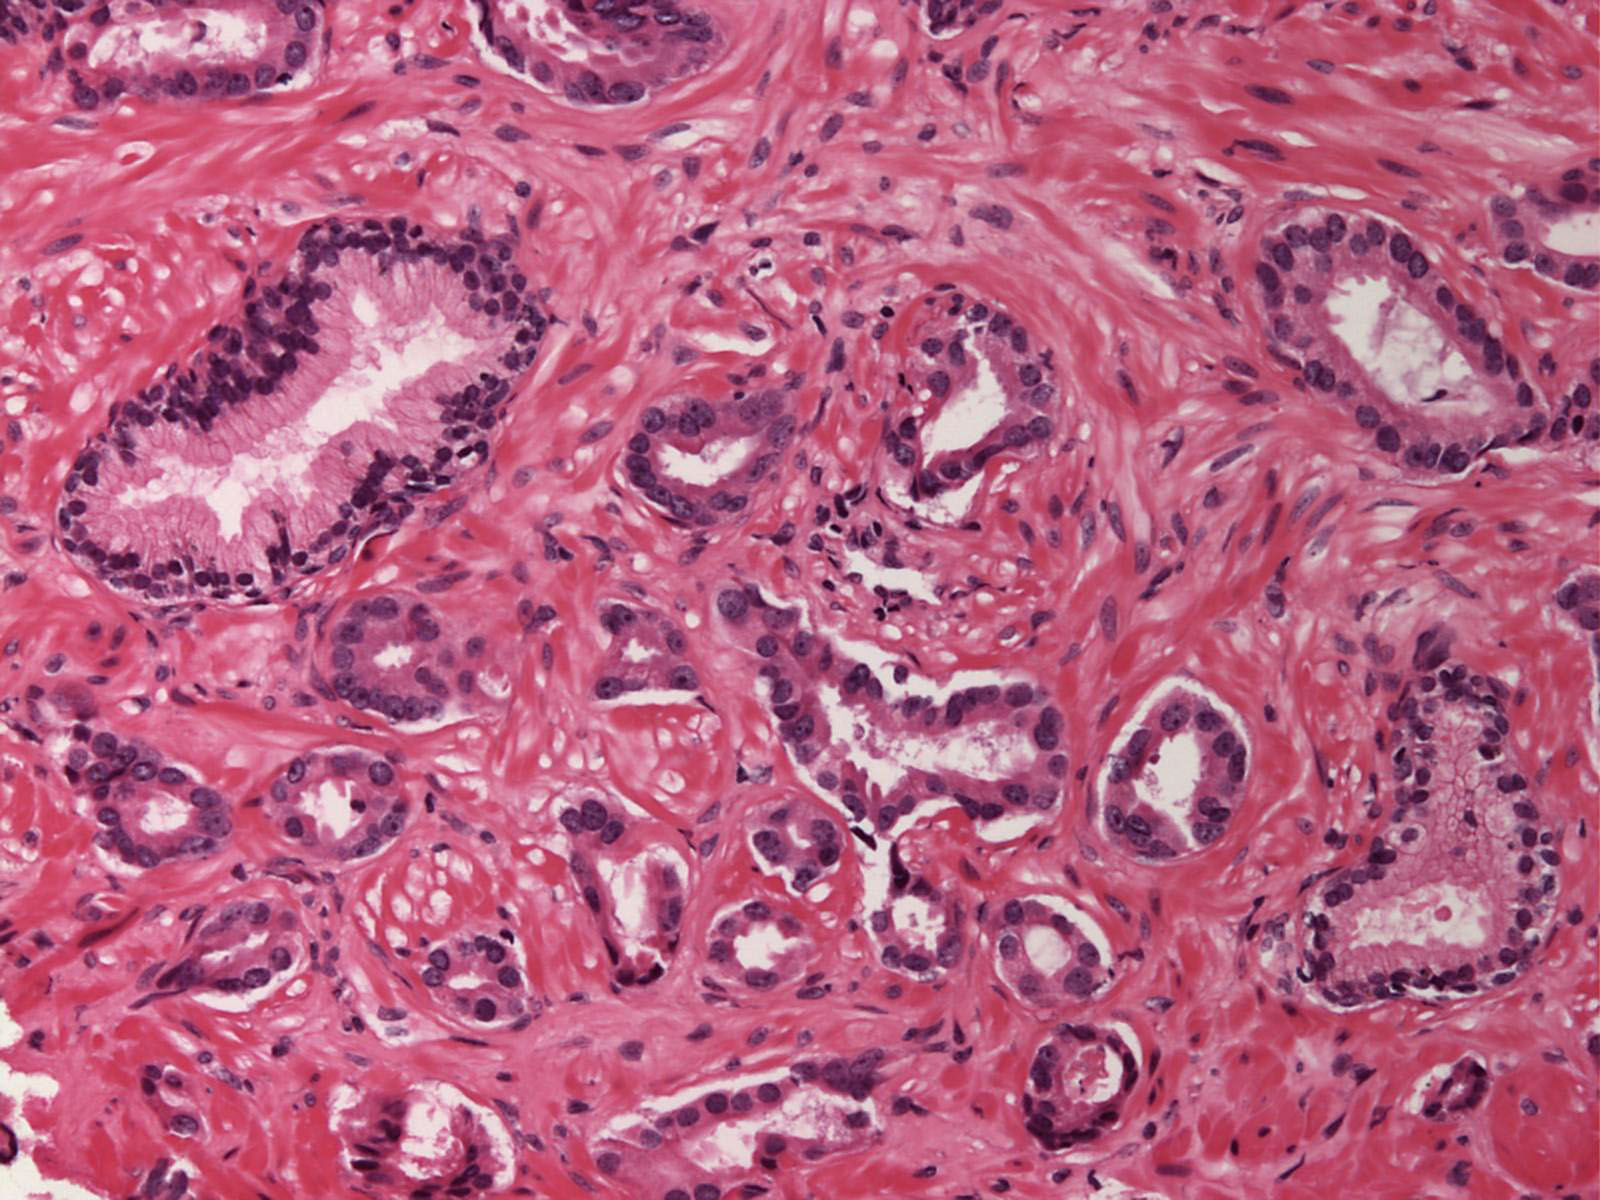 Medical Pictures Info – Adenocarcinoma Аденокарцинома Легкого